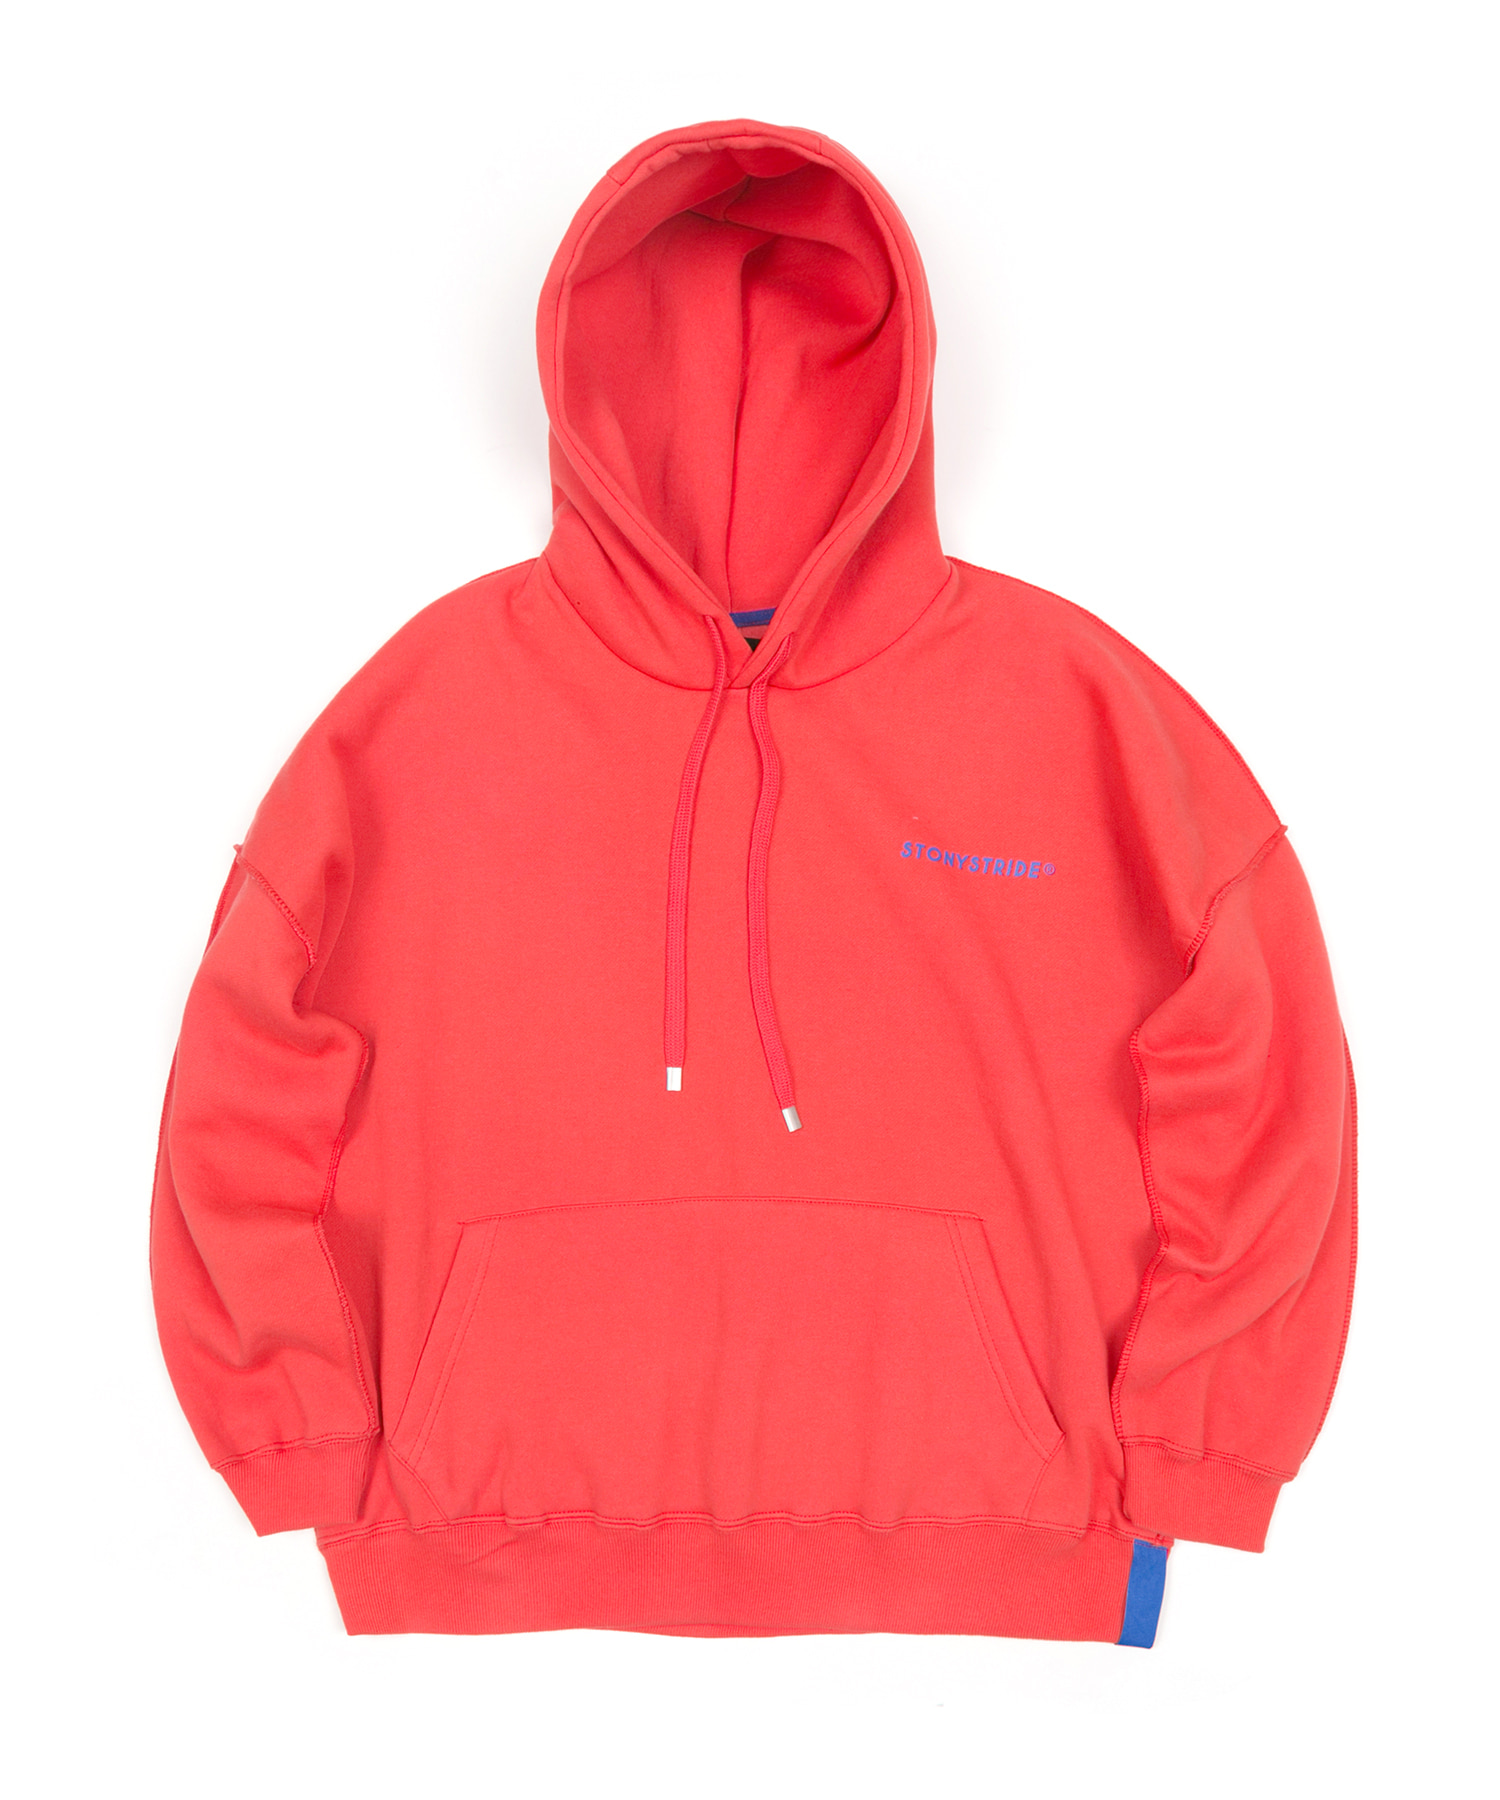 INSIDEOUT STITCH OVER HOODIE - RED